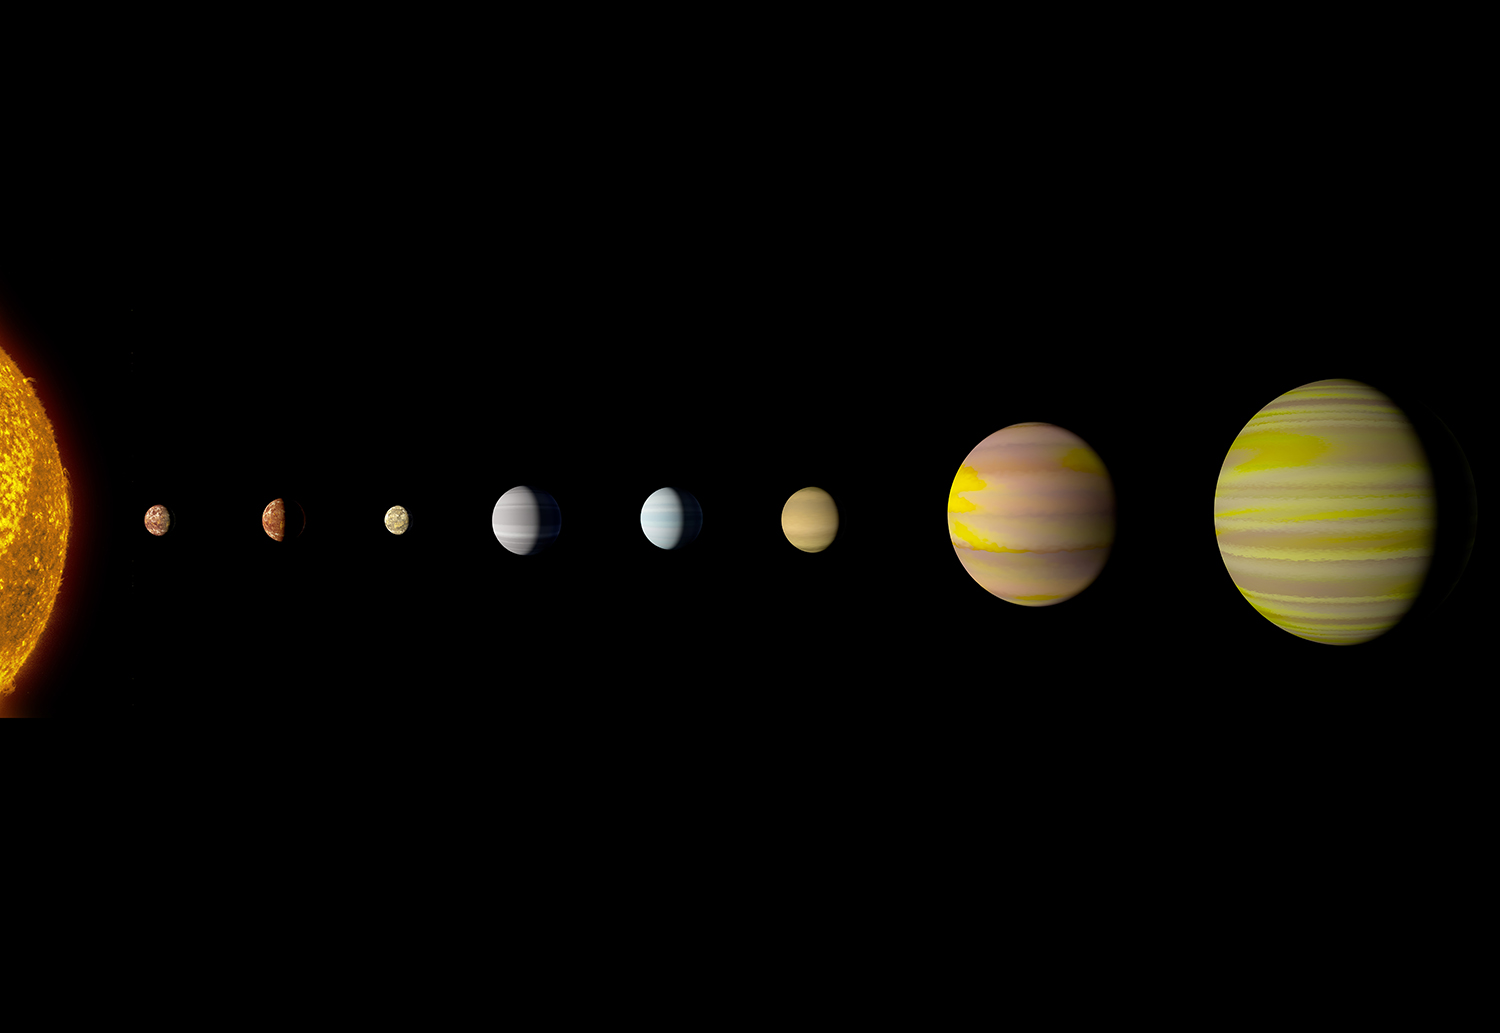 With the discovery of an eighth planet, the Kepler-90 system is the first to tie with our solar system in number of planets.